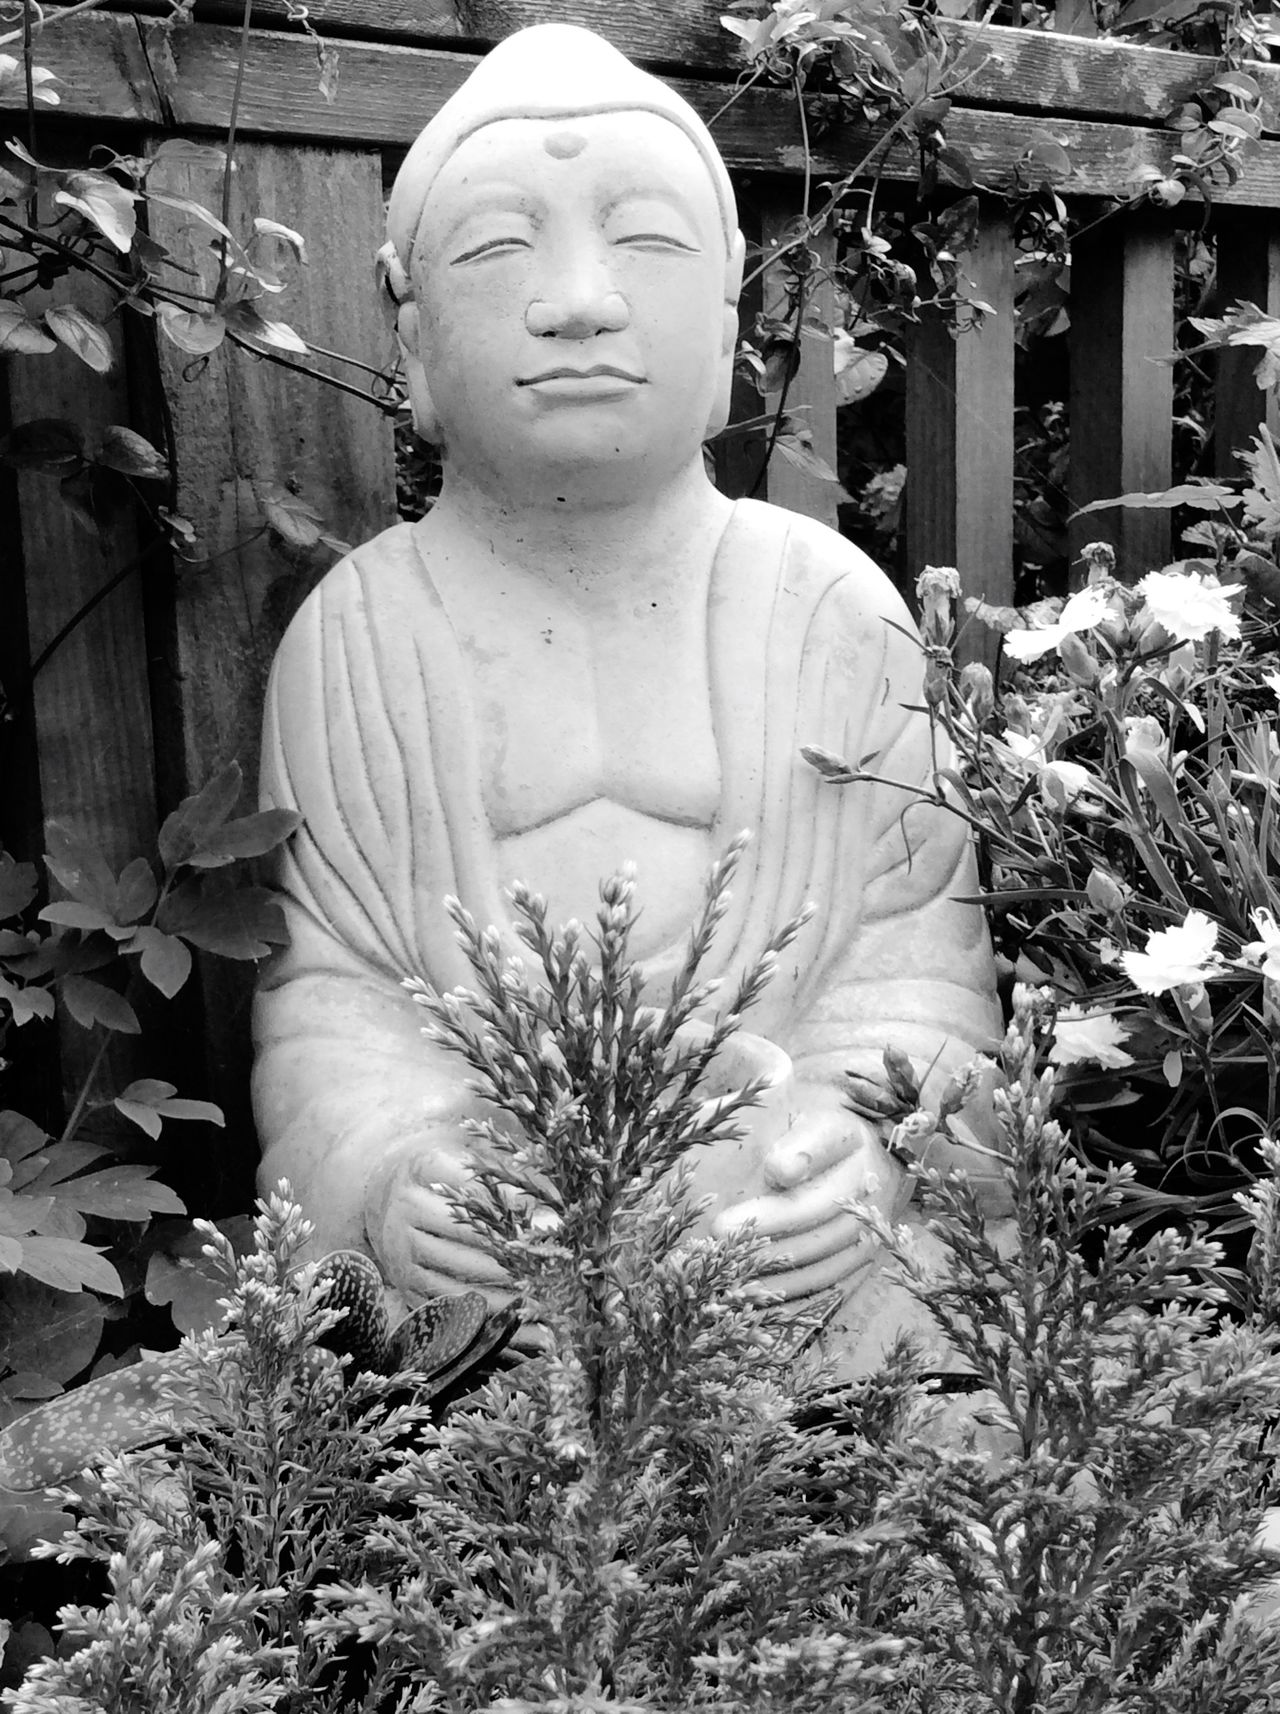 Shades Of Grey Relaxing Buddah Buddha Statue Buddha Image Buddhist Statue Buddha Head Buddist Statue Blackandwhite Black And White Black & White Blackandwhite Photography Black And White Photography Black&white Black Collection Black And White Collection  Meditation Meditation Place Meditation Garden Meditation Time Meditative Meditationgrowth Meditation Space Meditation Zen Meditation Spot